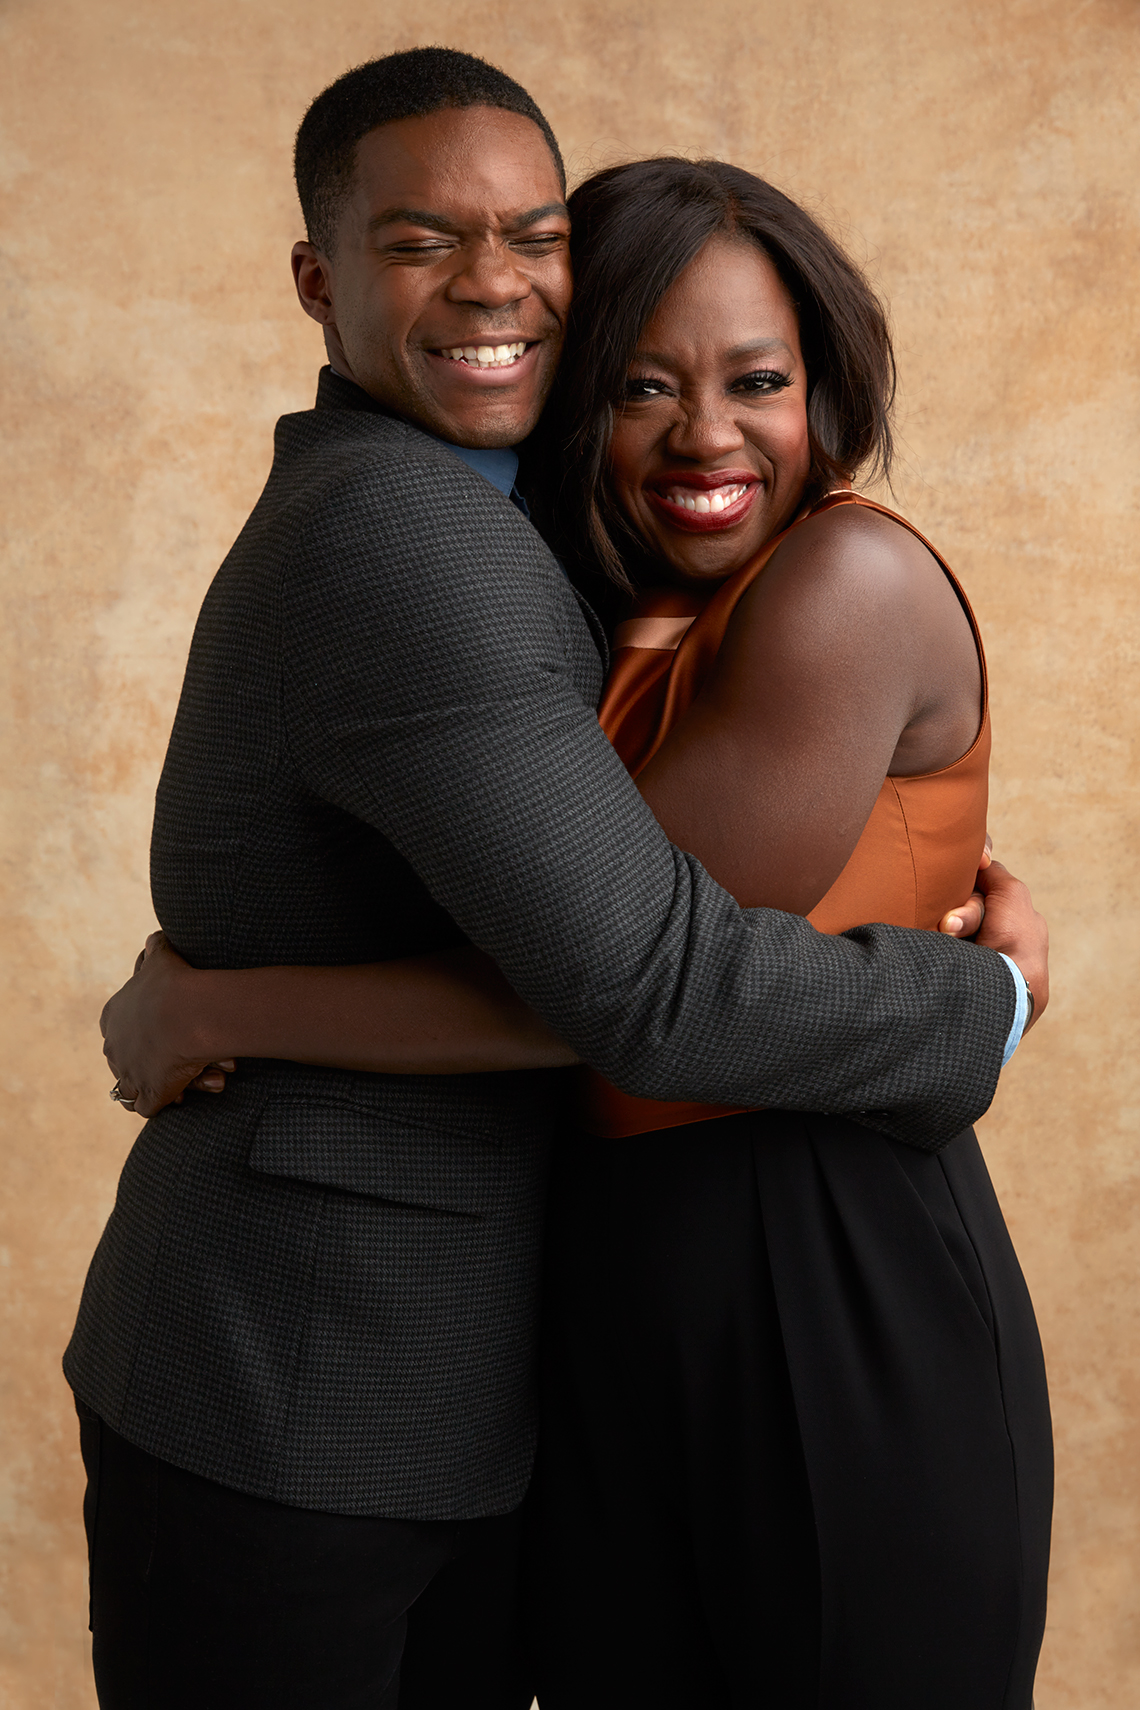 Jovan Adepo and Viola Davis at the 16th Annual AARP The Magazine's Movies for Grownups Awards